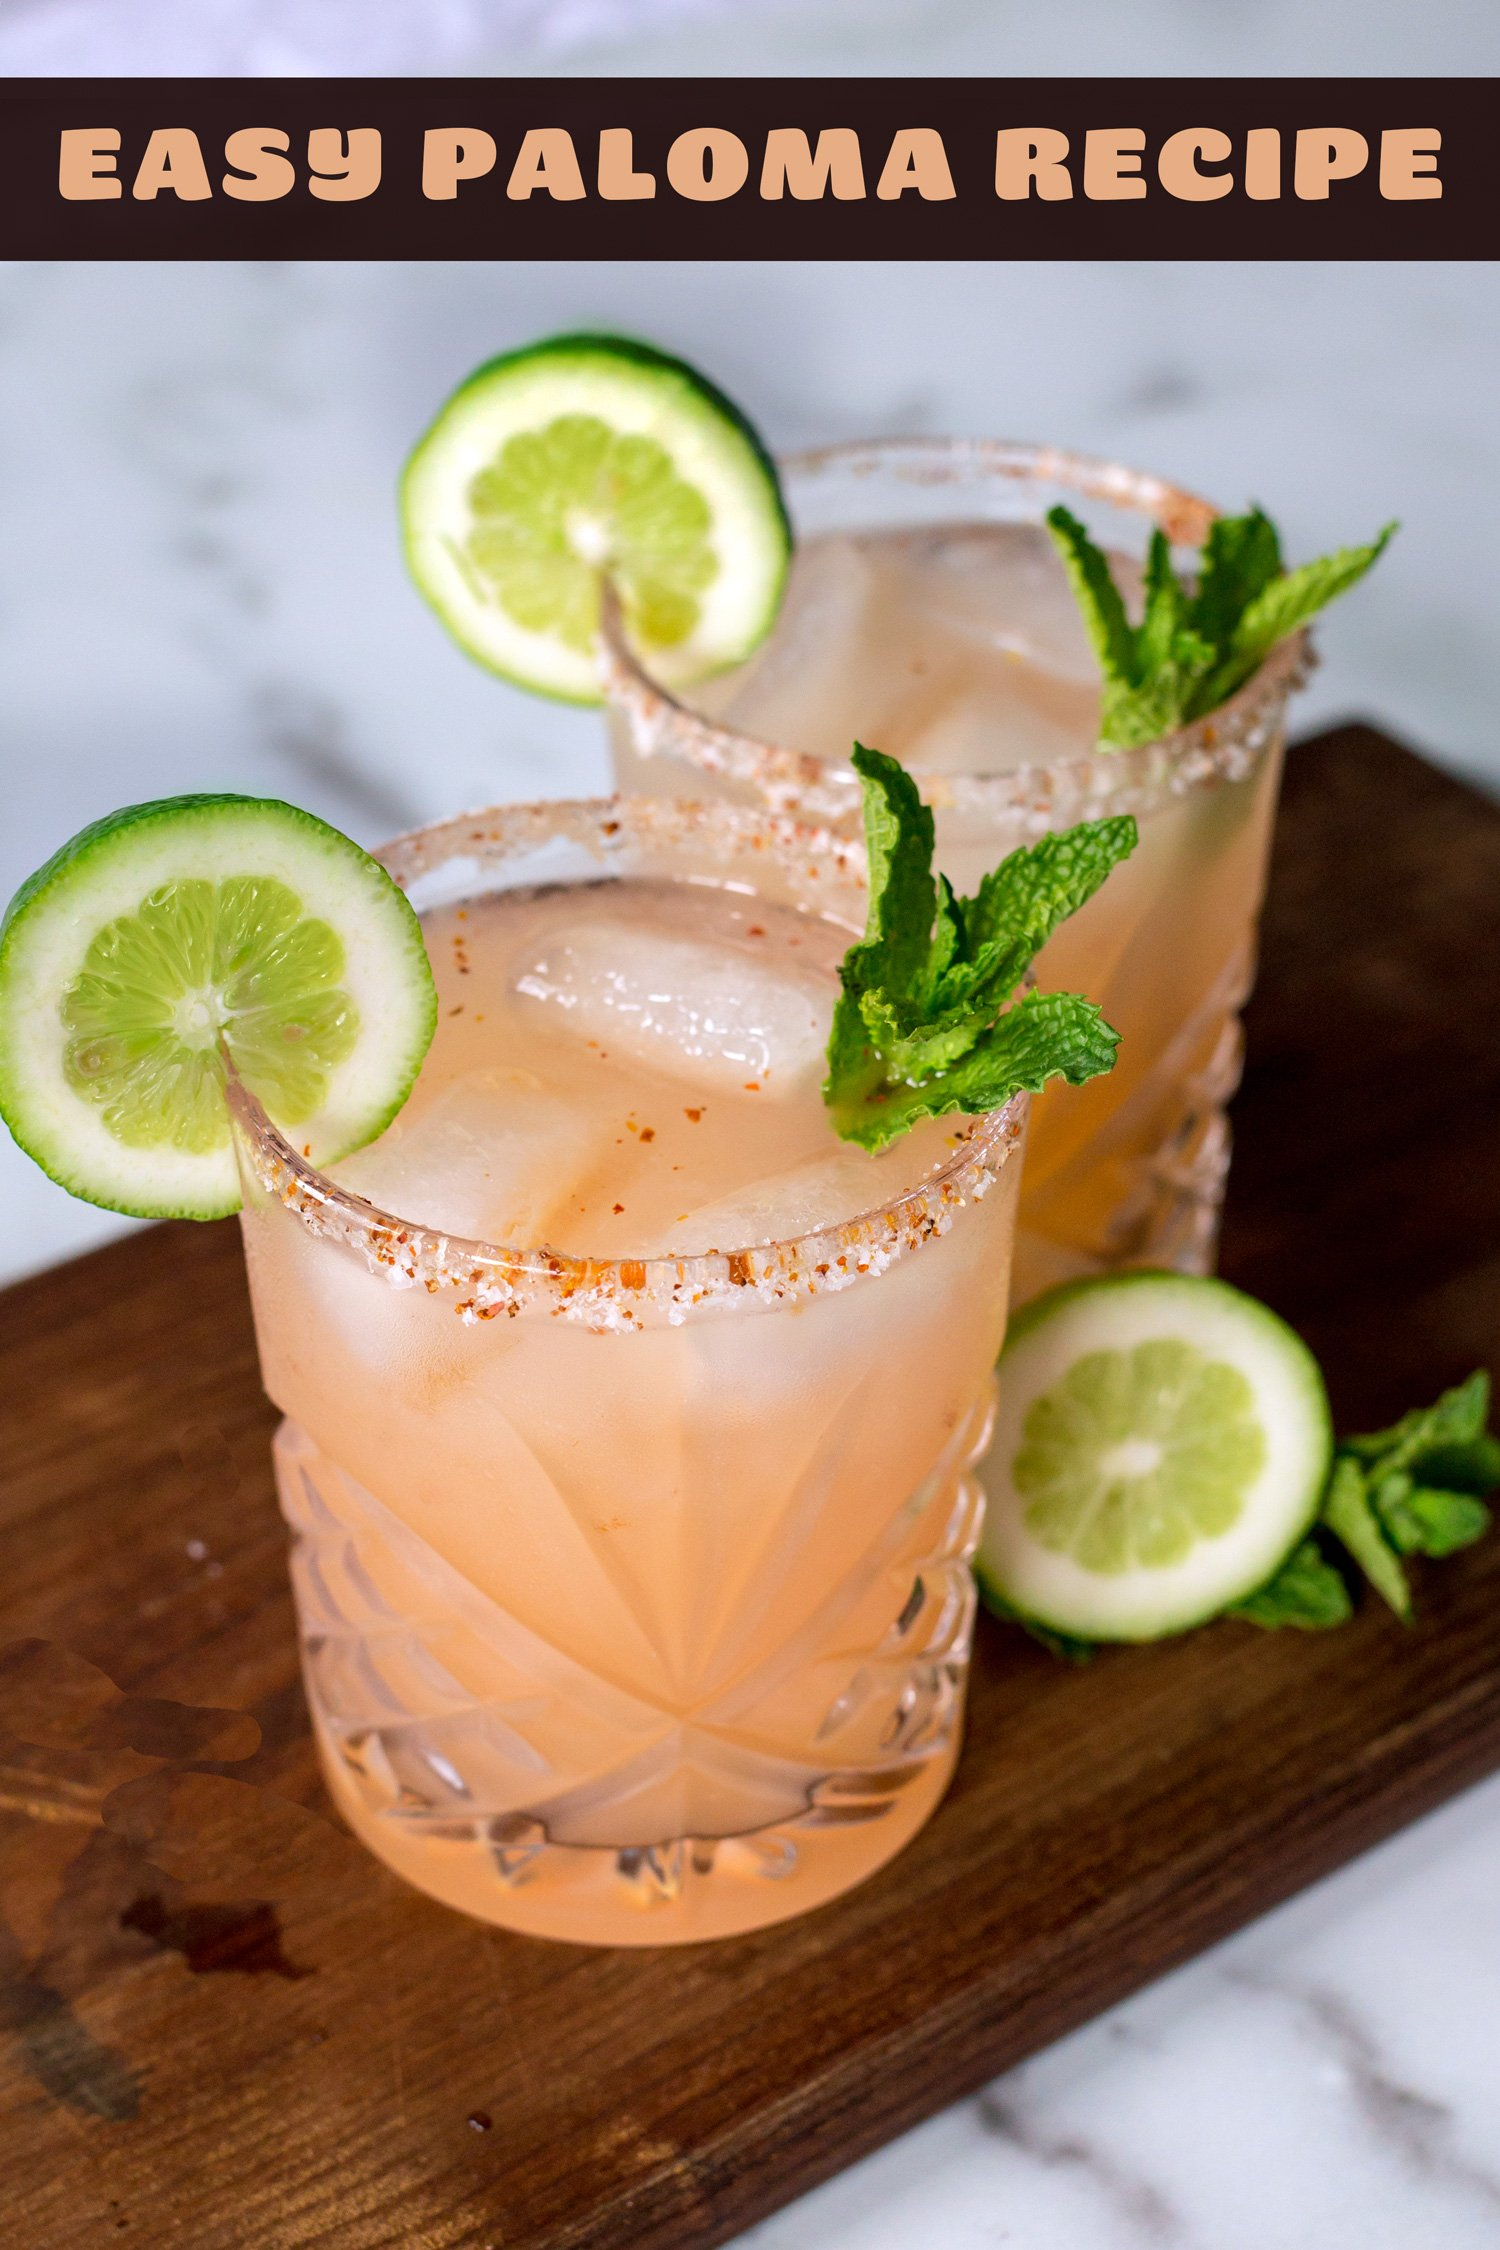 Easy Paloma Cocktail Recipe